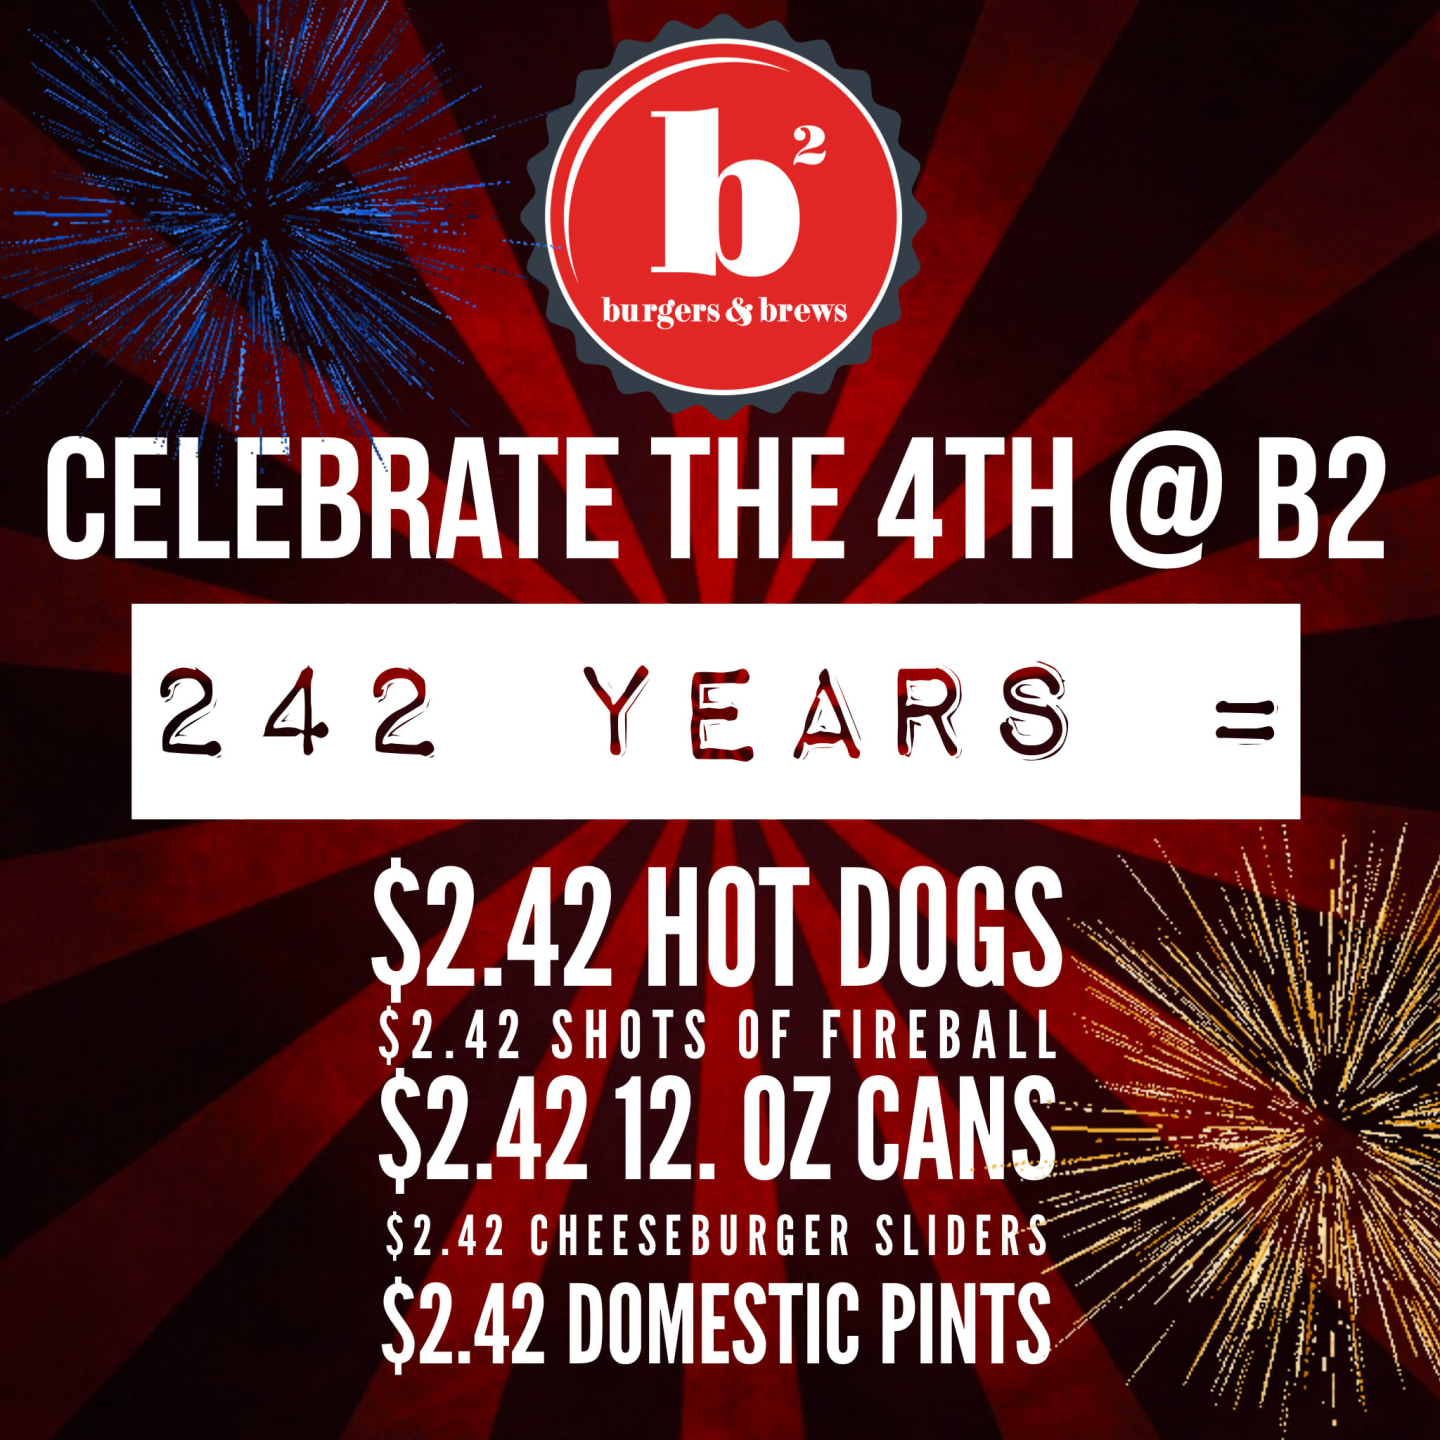 Celebrate the 4th at b²!